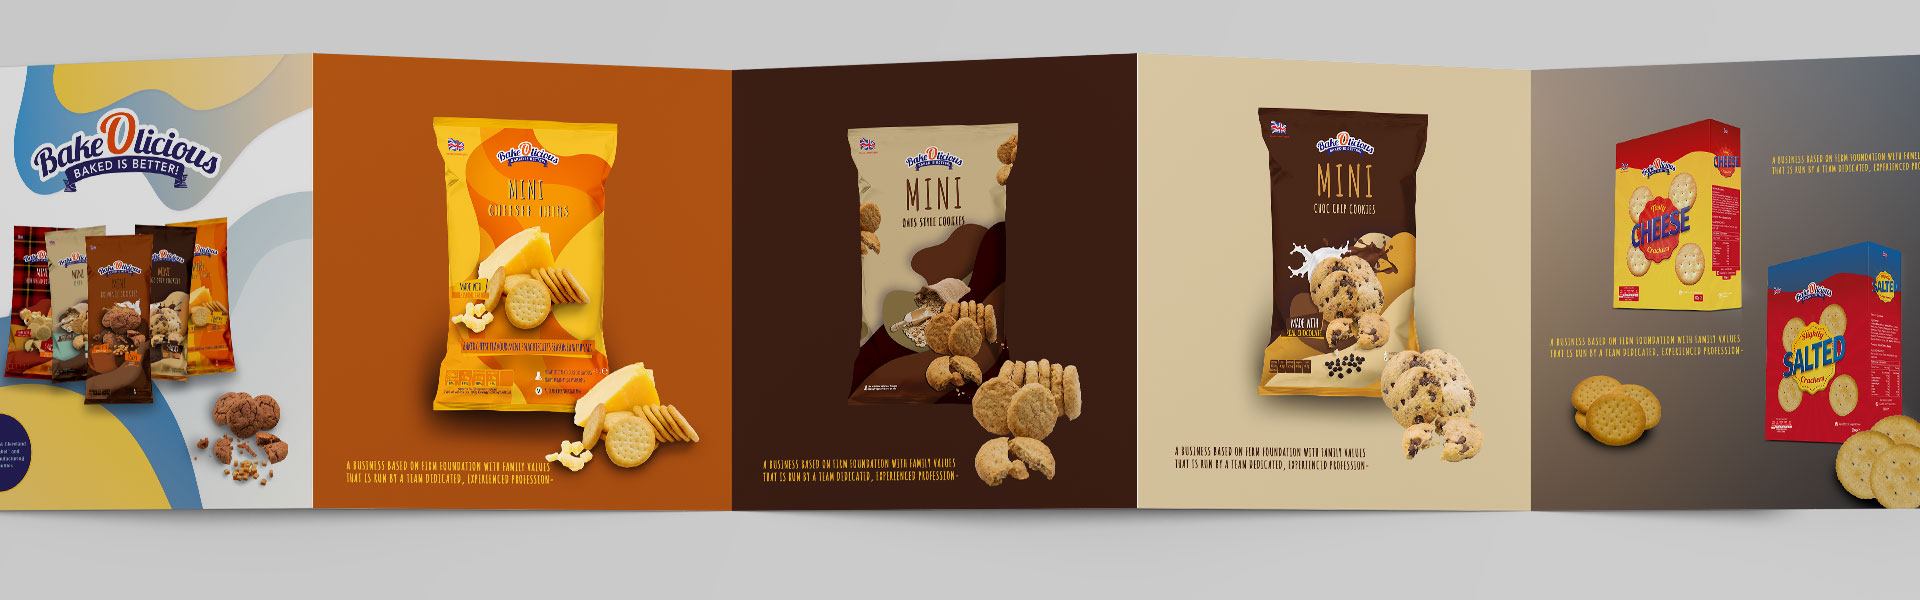 AM-Marketing-BakeOlicious-Brochure